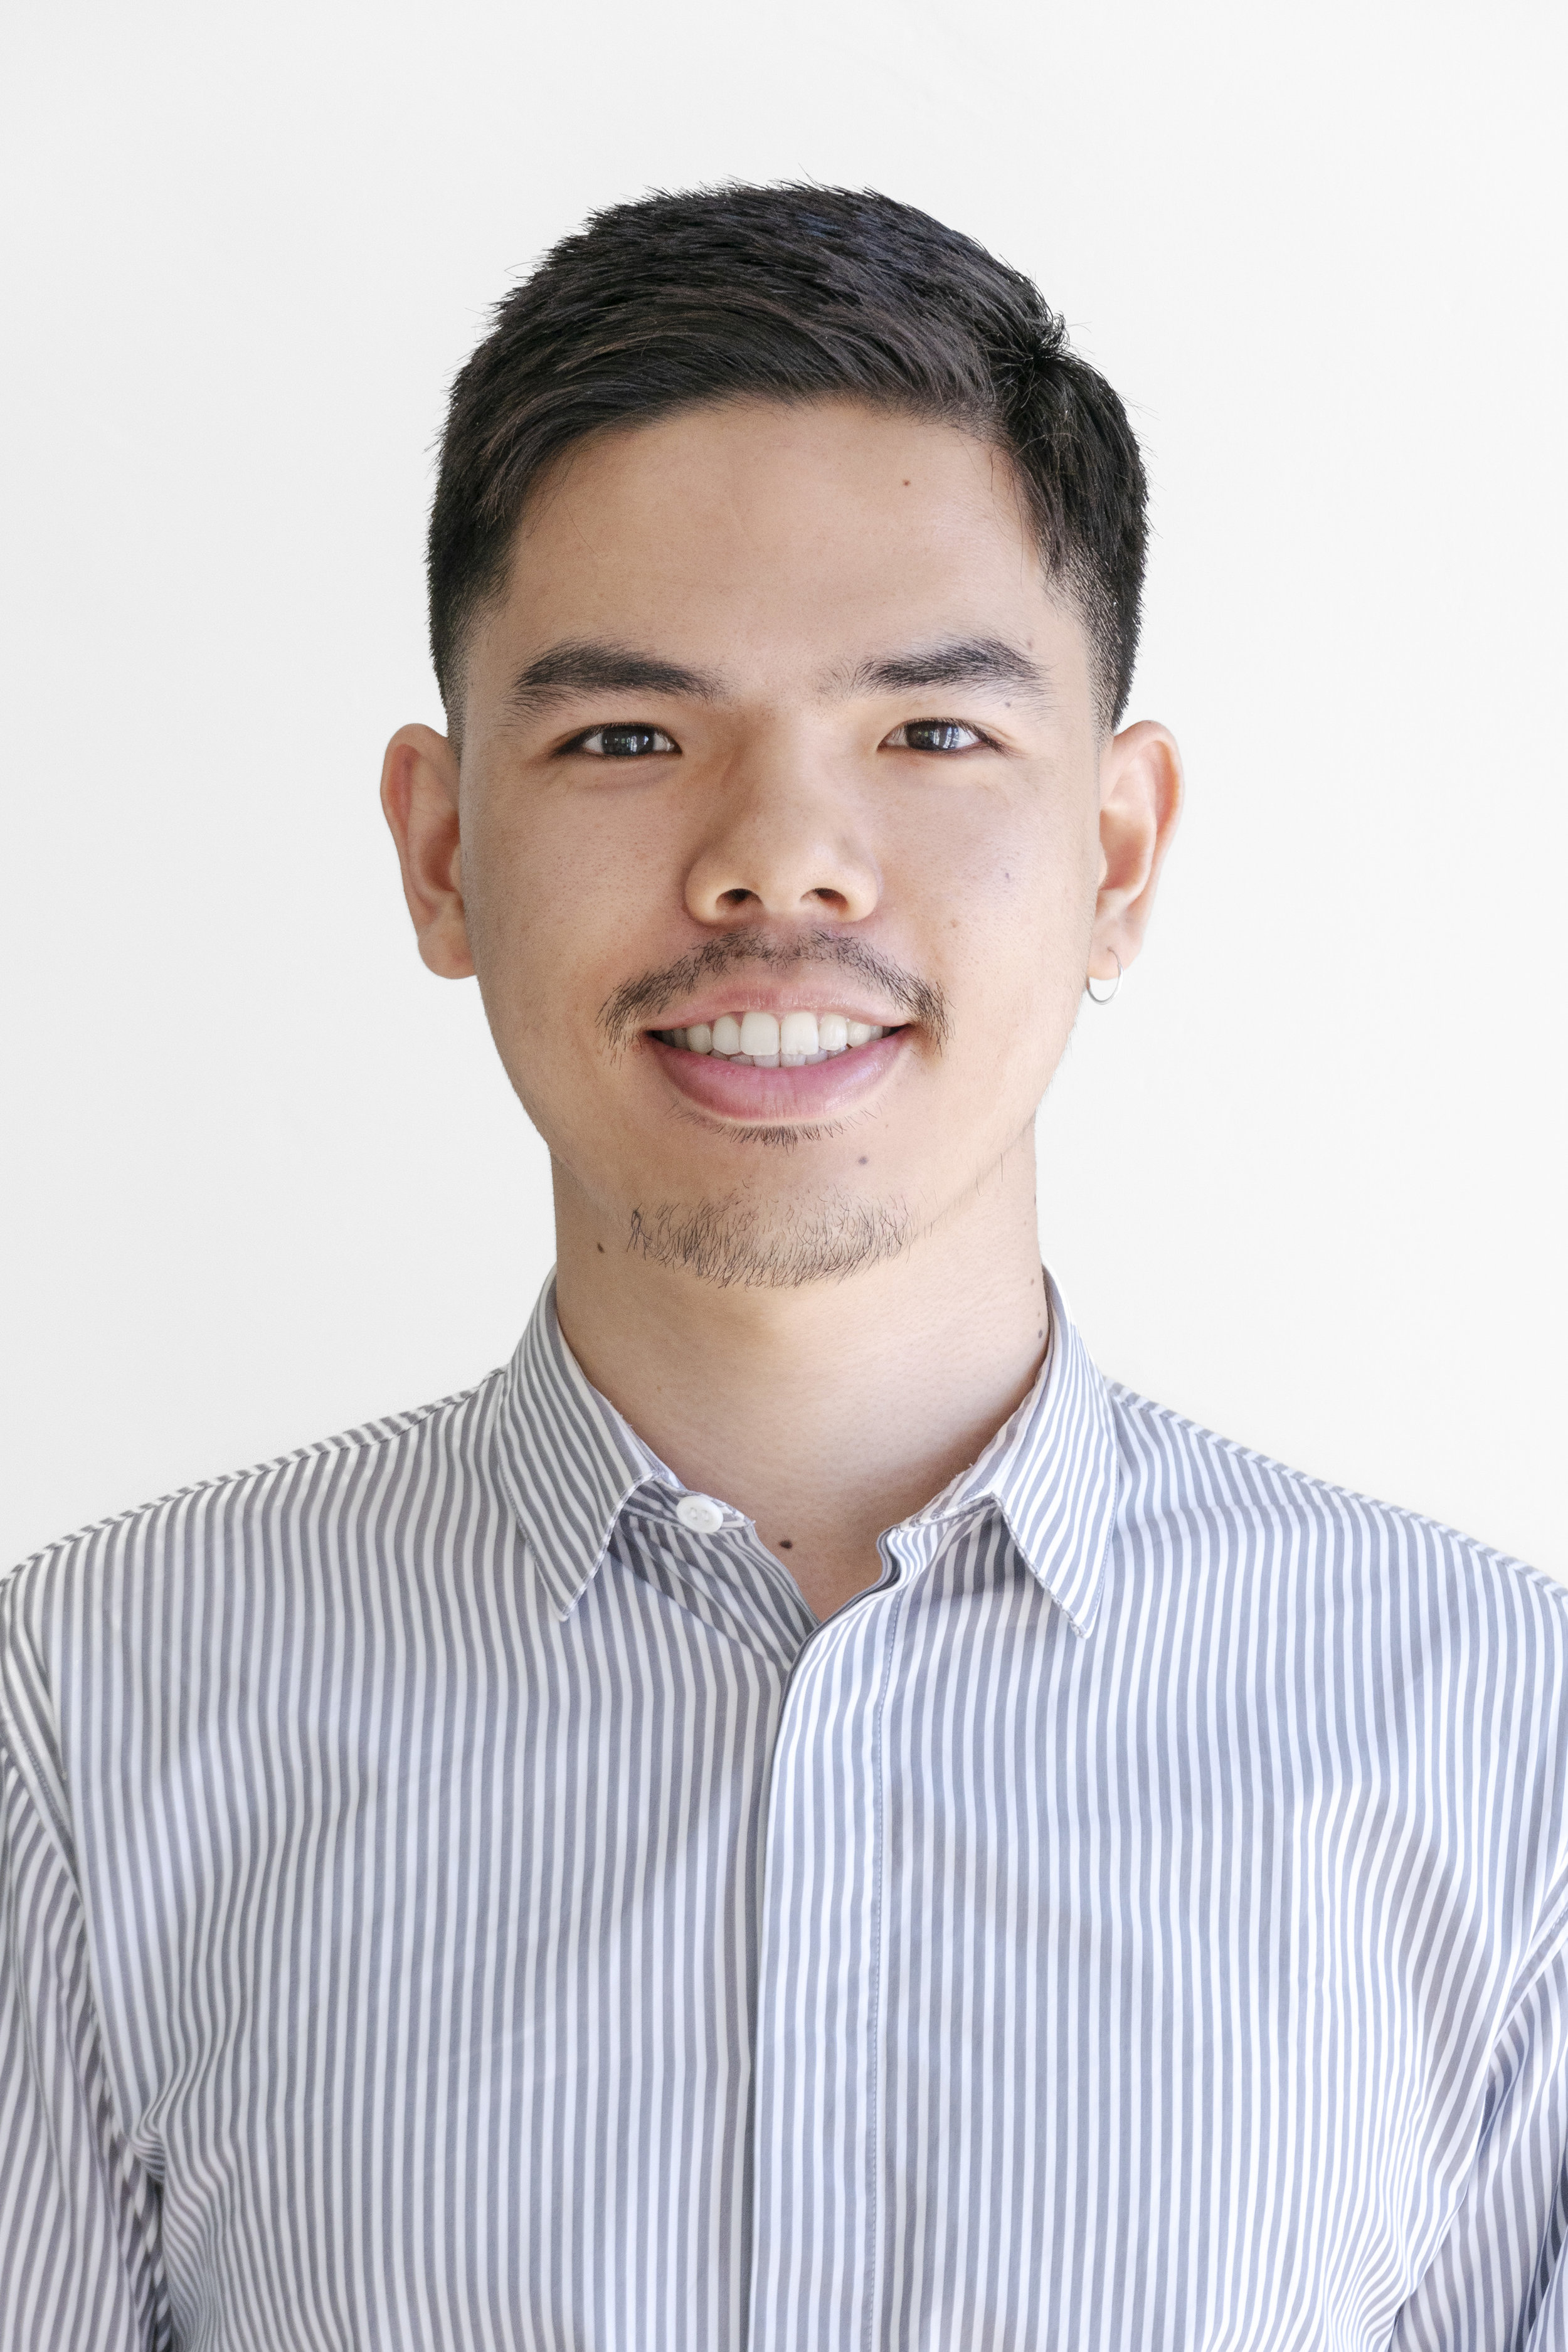 Teruaki Hara Architectural Designer  Teruaki Hara joined Charlap Hyman & Herrero's Los Angeles office as a designer in 2019. He received his architectural training at the A. Alfred Taubman College of Architecture and Urban Planning at the University of Michigan and at University of Illinois at Urbana-Champaign.